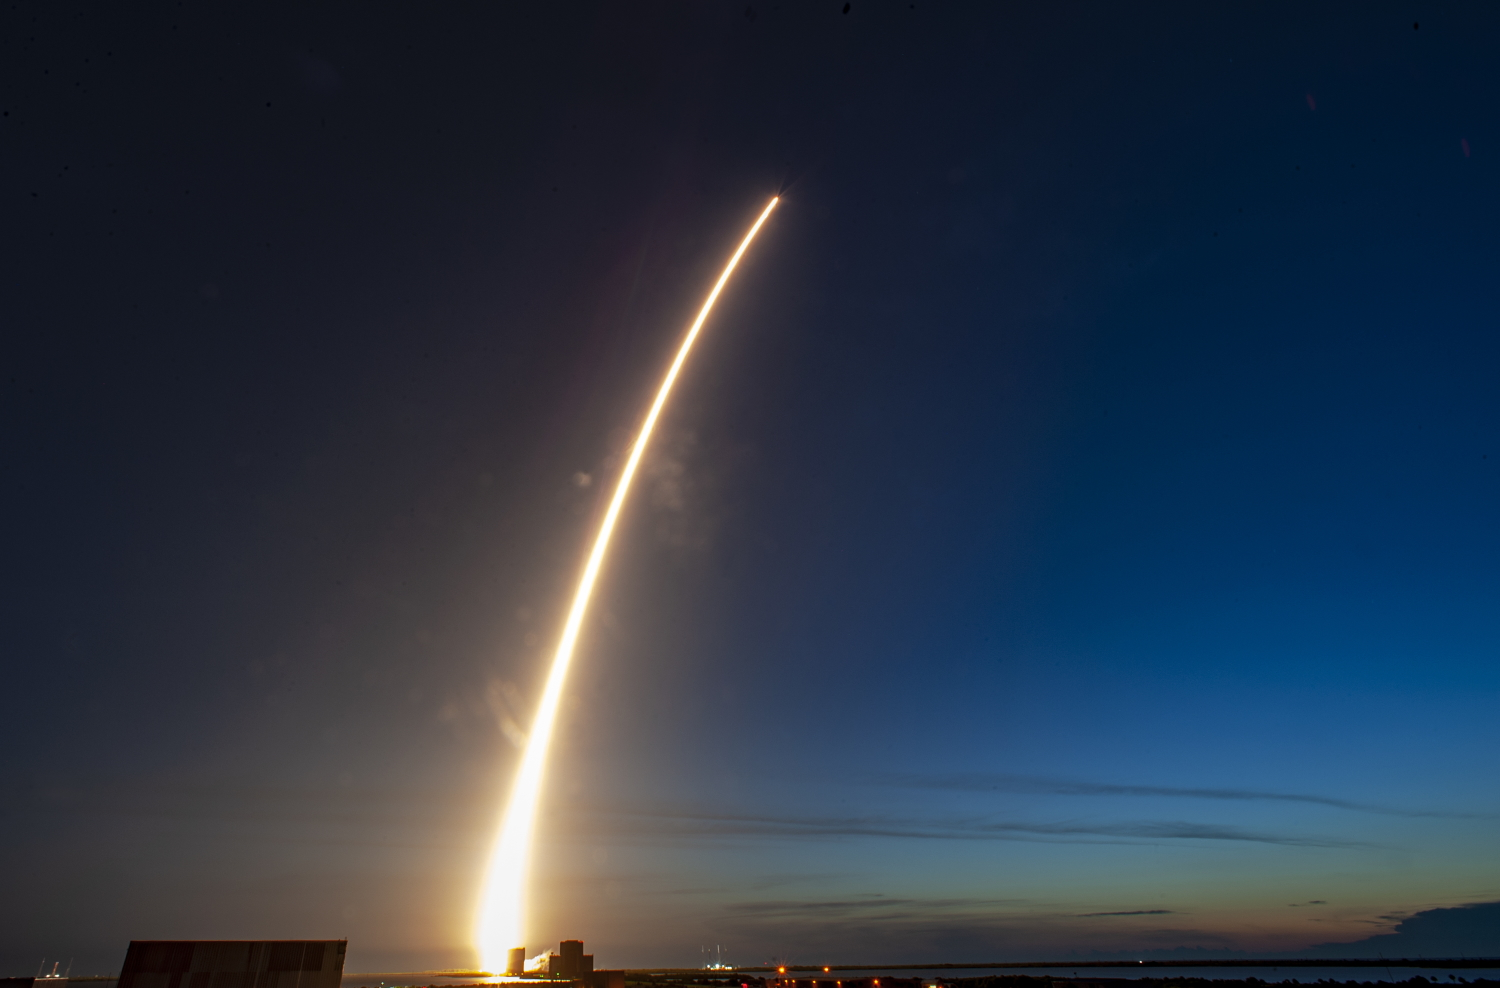 Space and Missile Systems Center of the U.S. Air Force's 5th Advanced Extreme High Frequency (AEHF-5 ) atop a United Launch Alliance's Atlas V rocket lifts off on Aug. 8, 2019 from Space Launch Complex-41 at Cape Canaveral Air Force Station, Fla. (DoD)